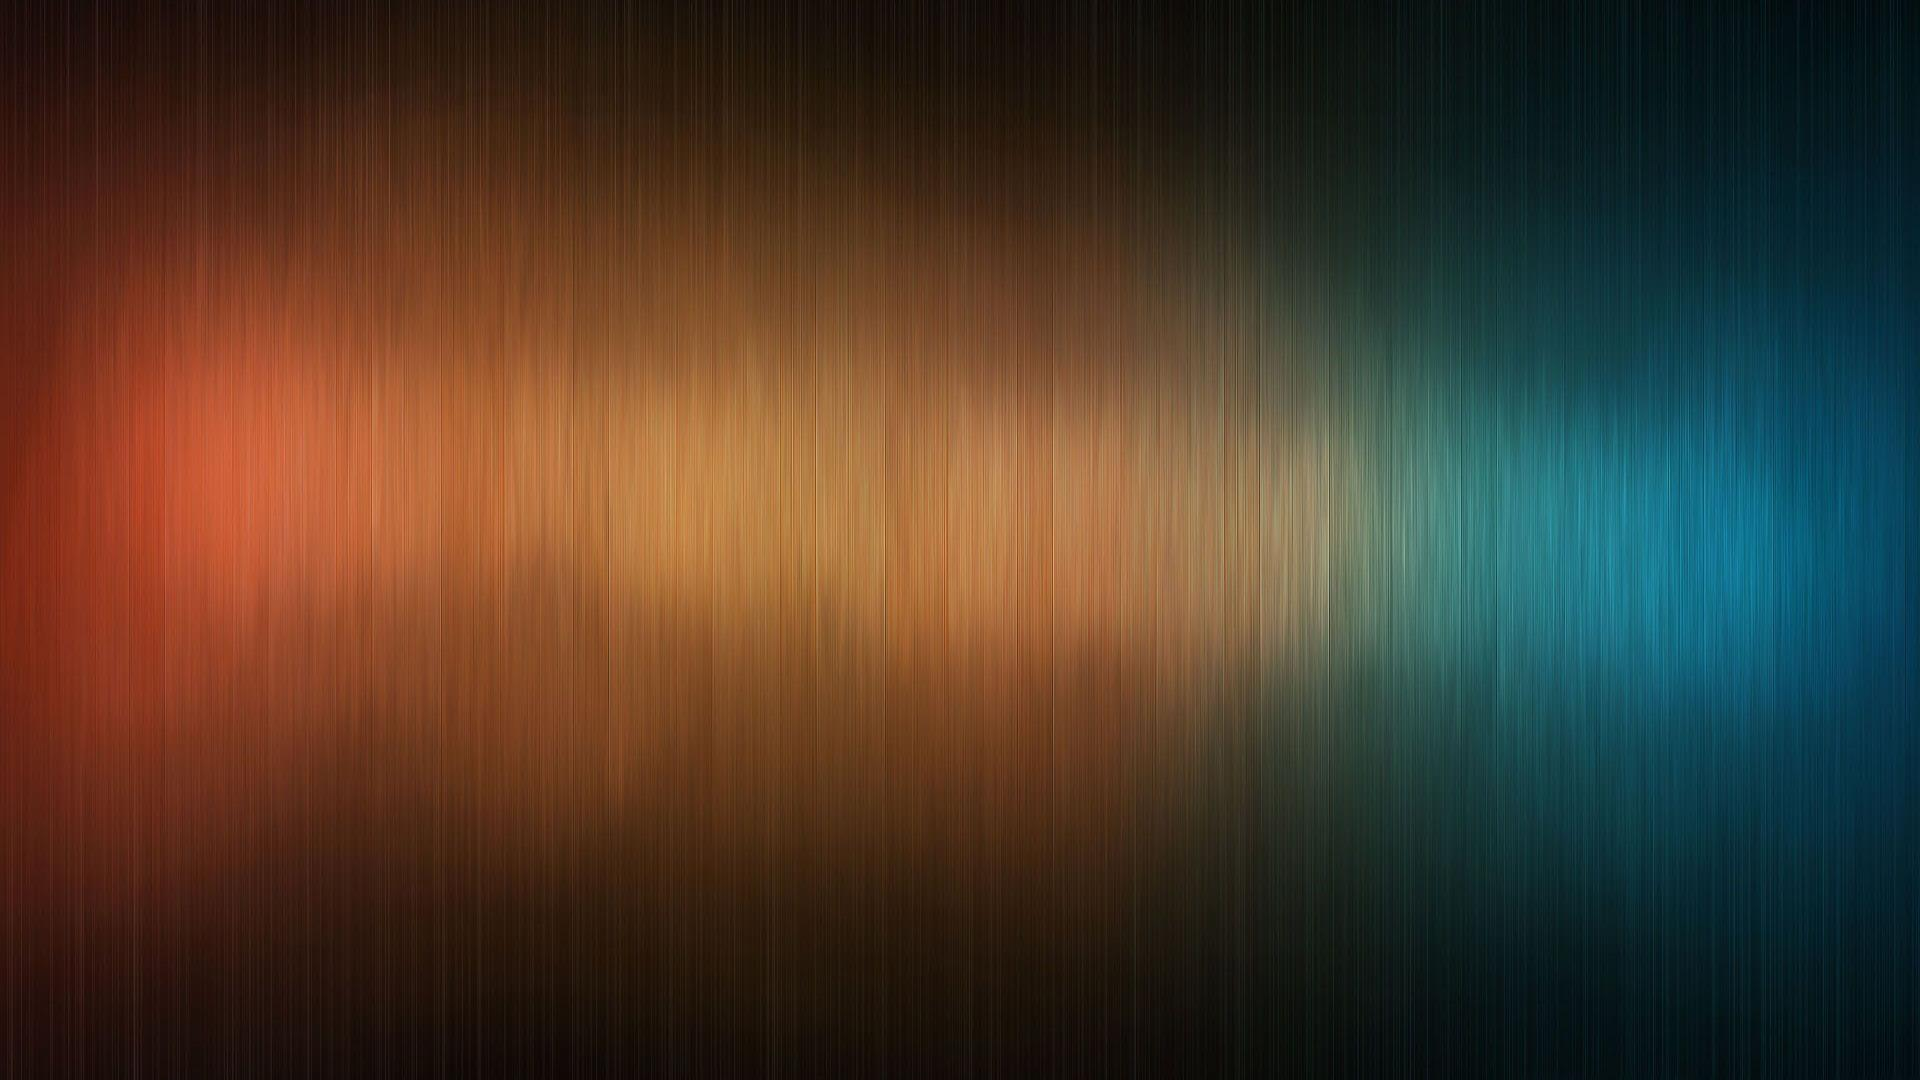 Plain Fuzzy Background 92.2 Kb